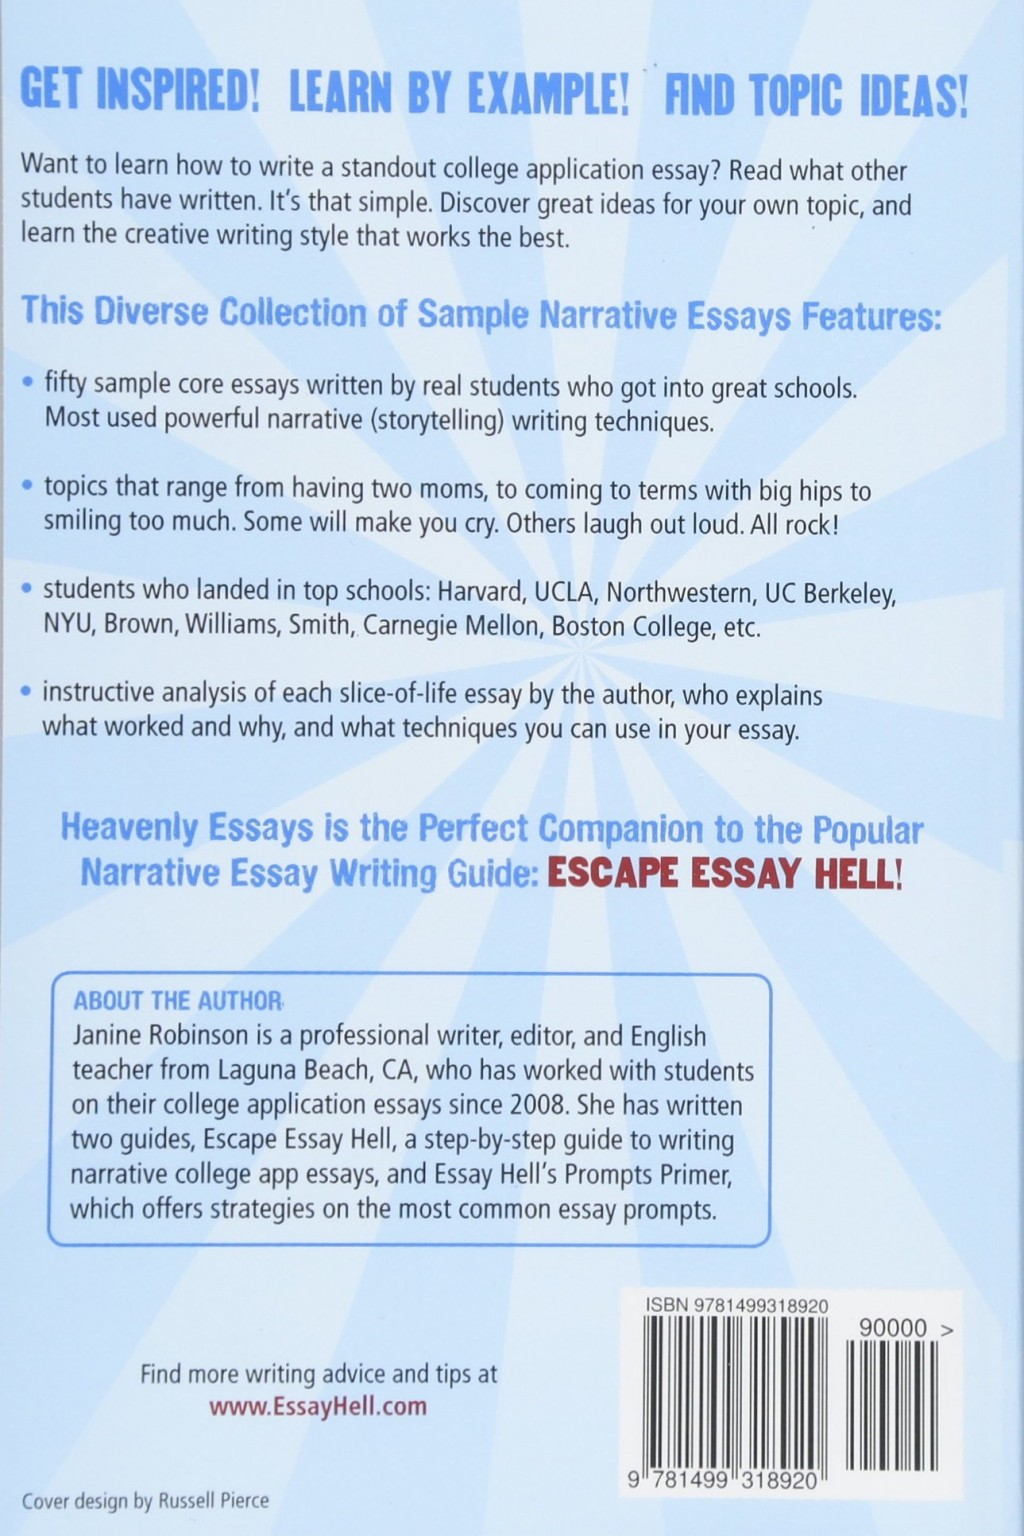 022 Essay Example Ideas For Narrative Beautiful A Fictional Writing Personal Descriptive Large